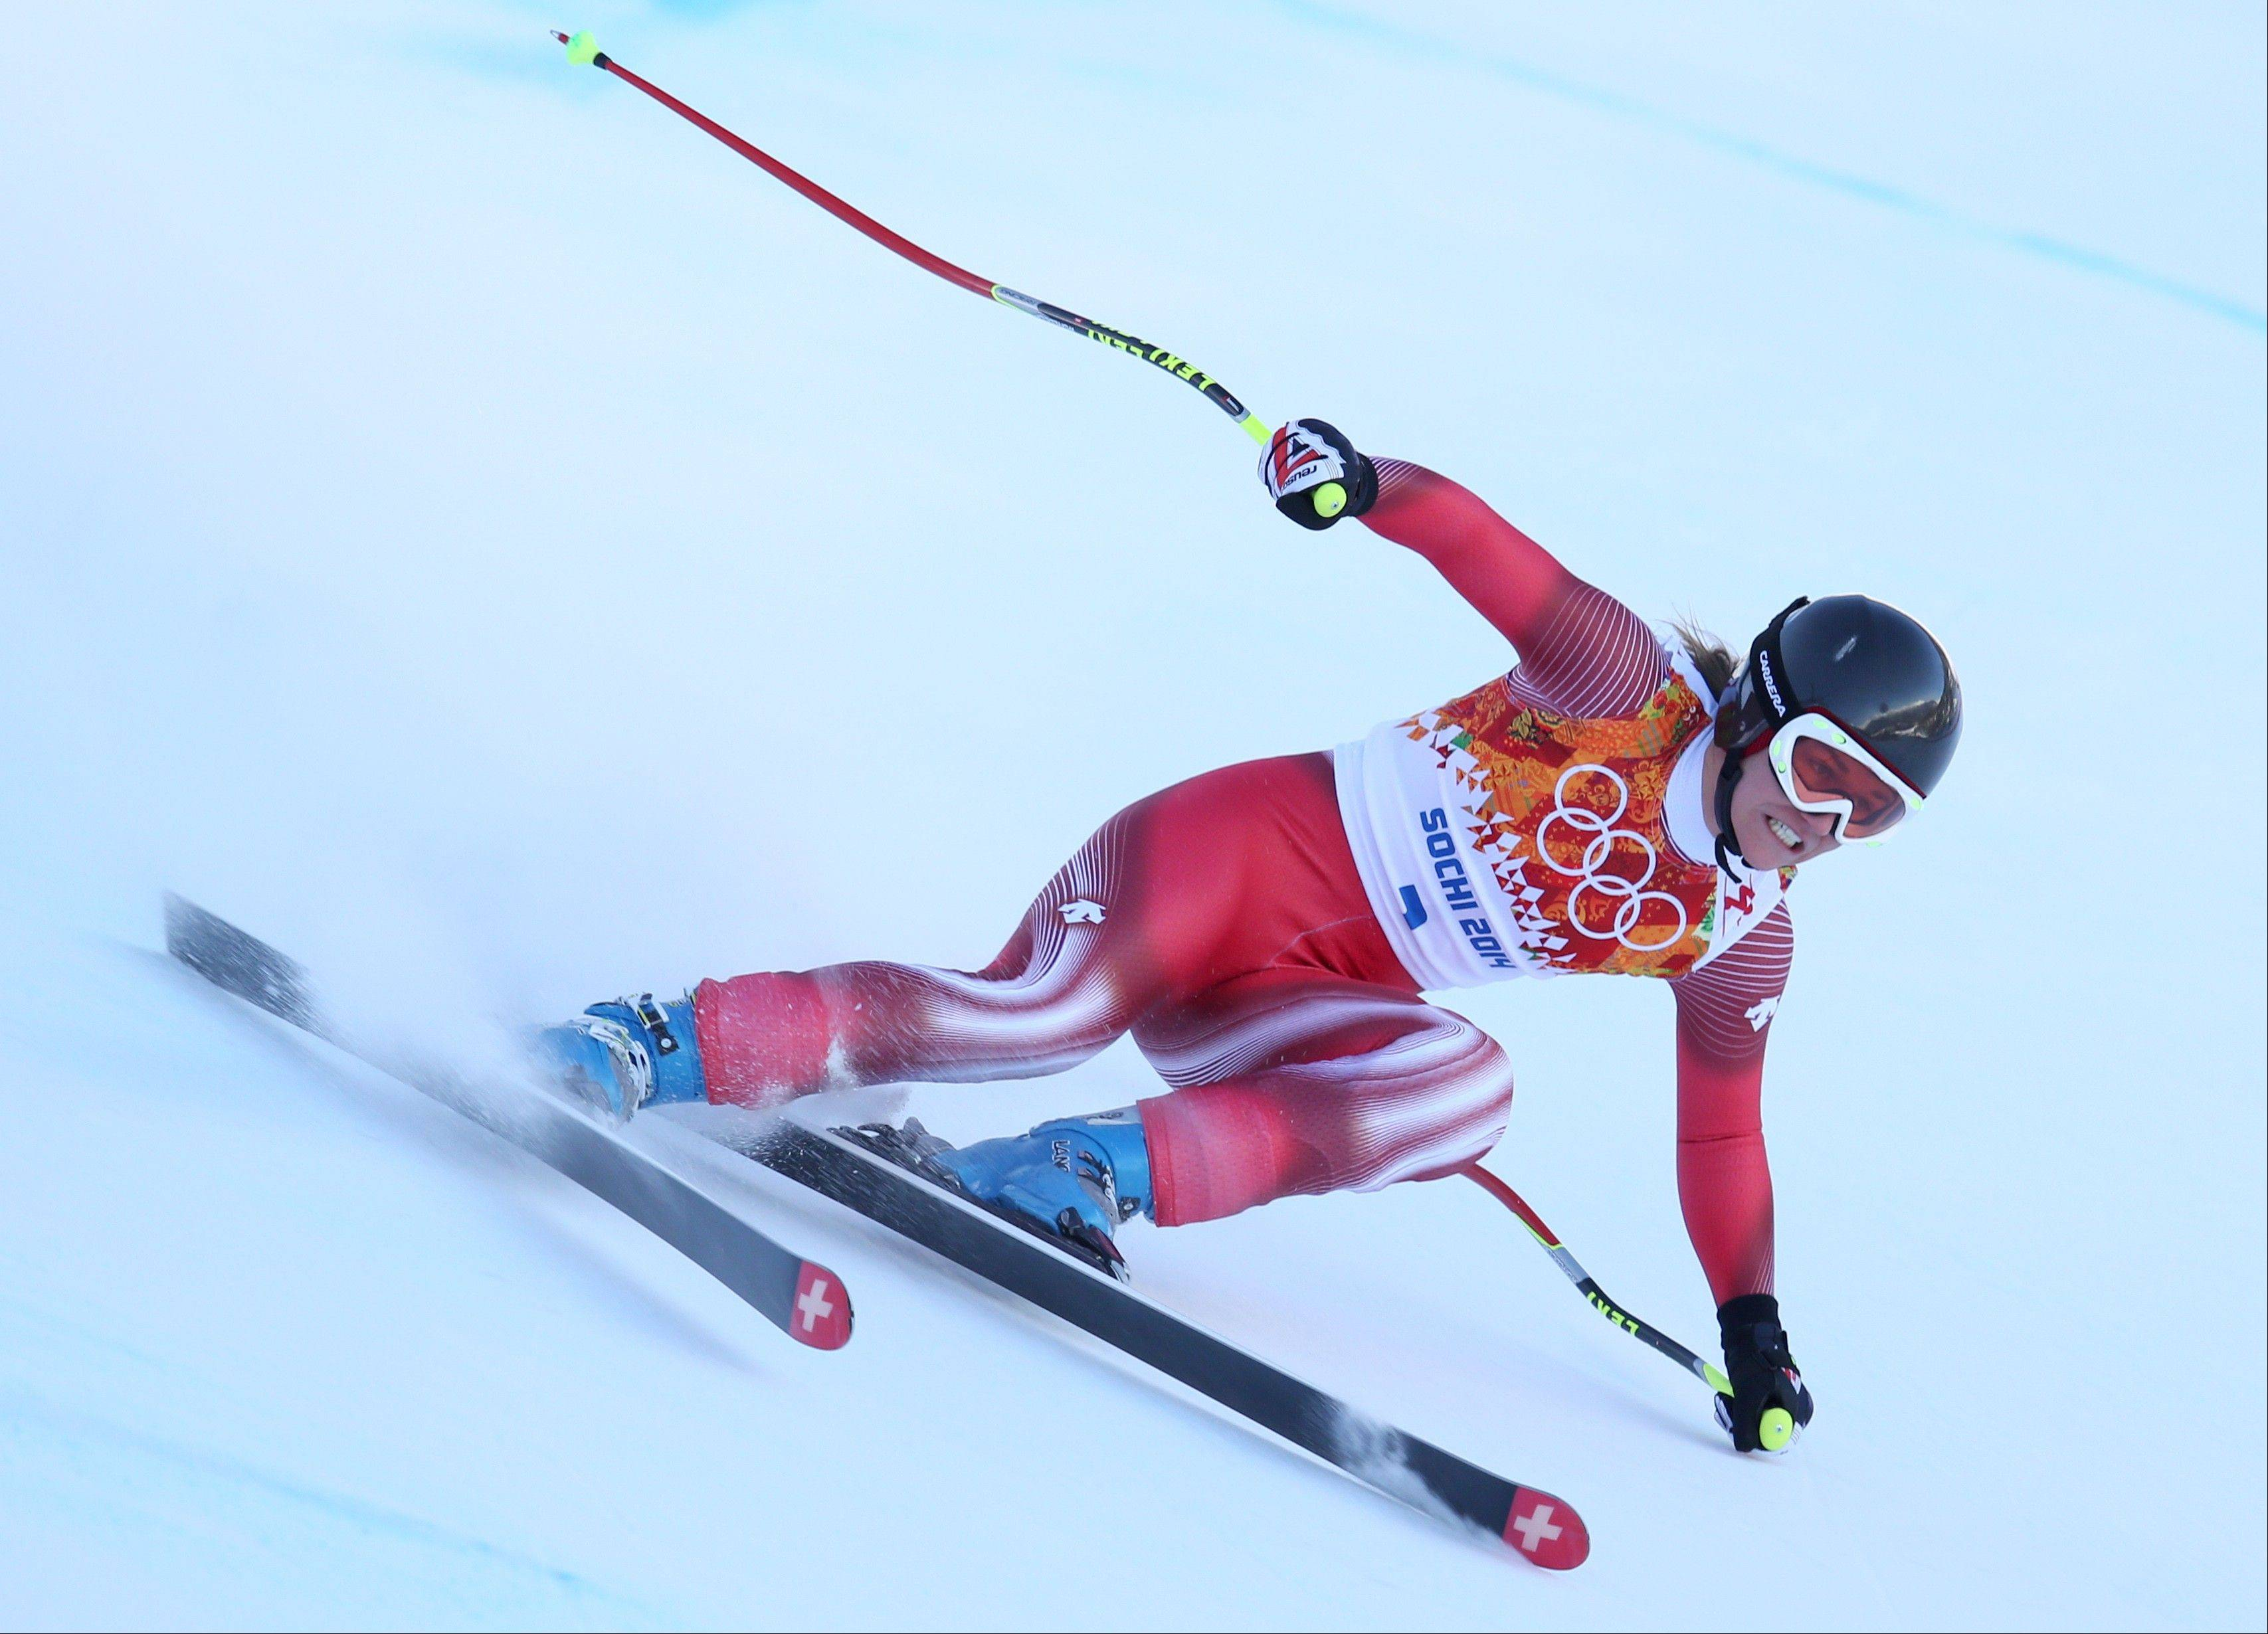 Switzerland's Fabienne Suter makes a turn Friday in a women's downhill training run for the Sochi 2014 Winter Olympics in Krasnaya Polyana, Russia.